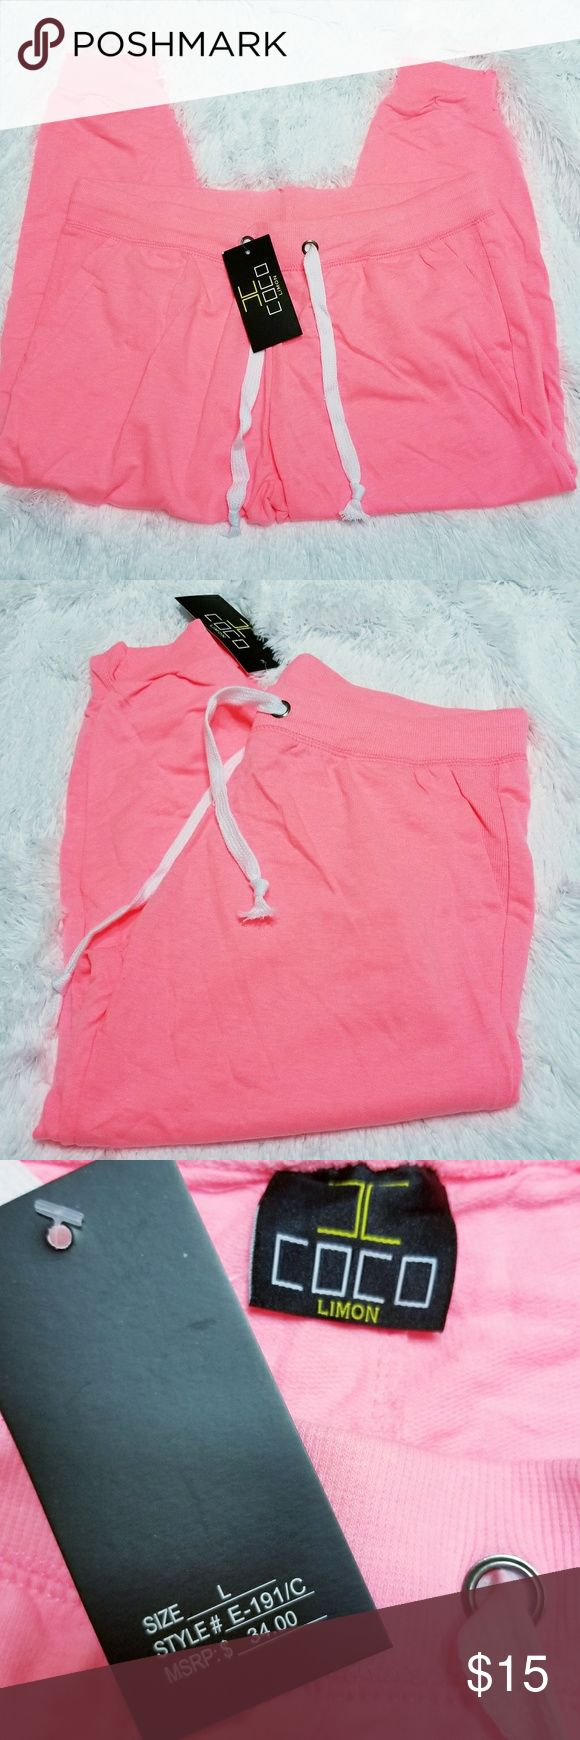 COCO Limon sweat Pink capri pants In great Condition, really bright Neon Pink color Coco Limon Pants Capris